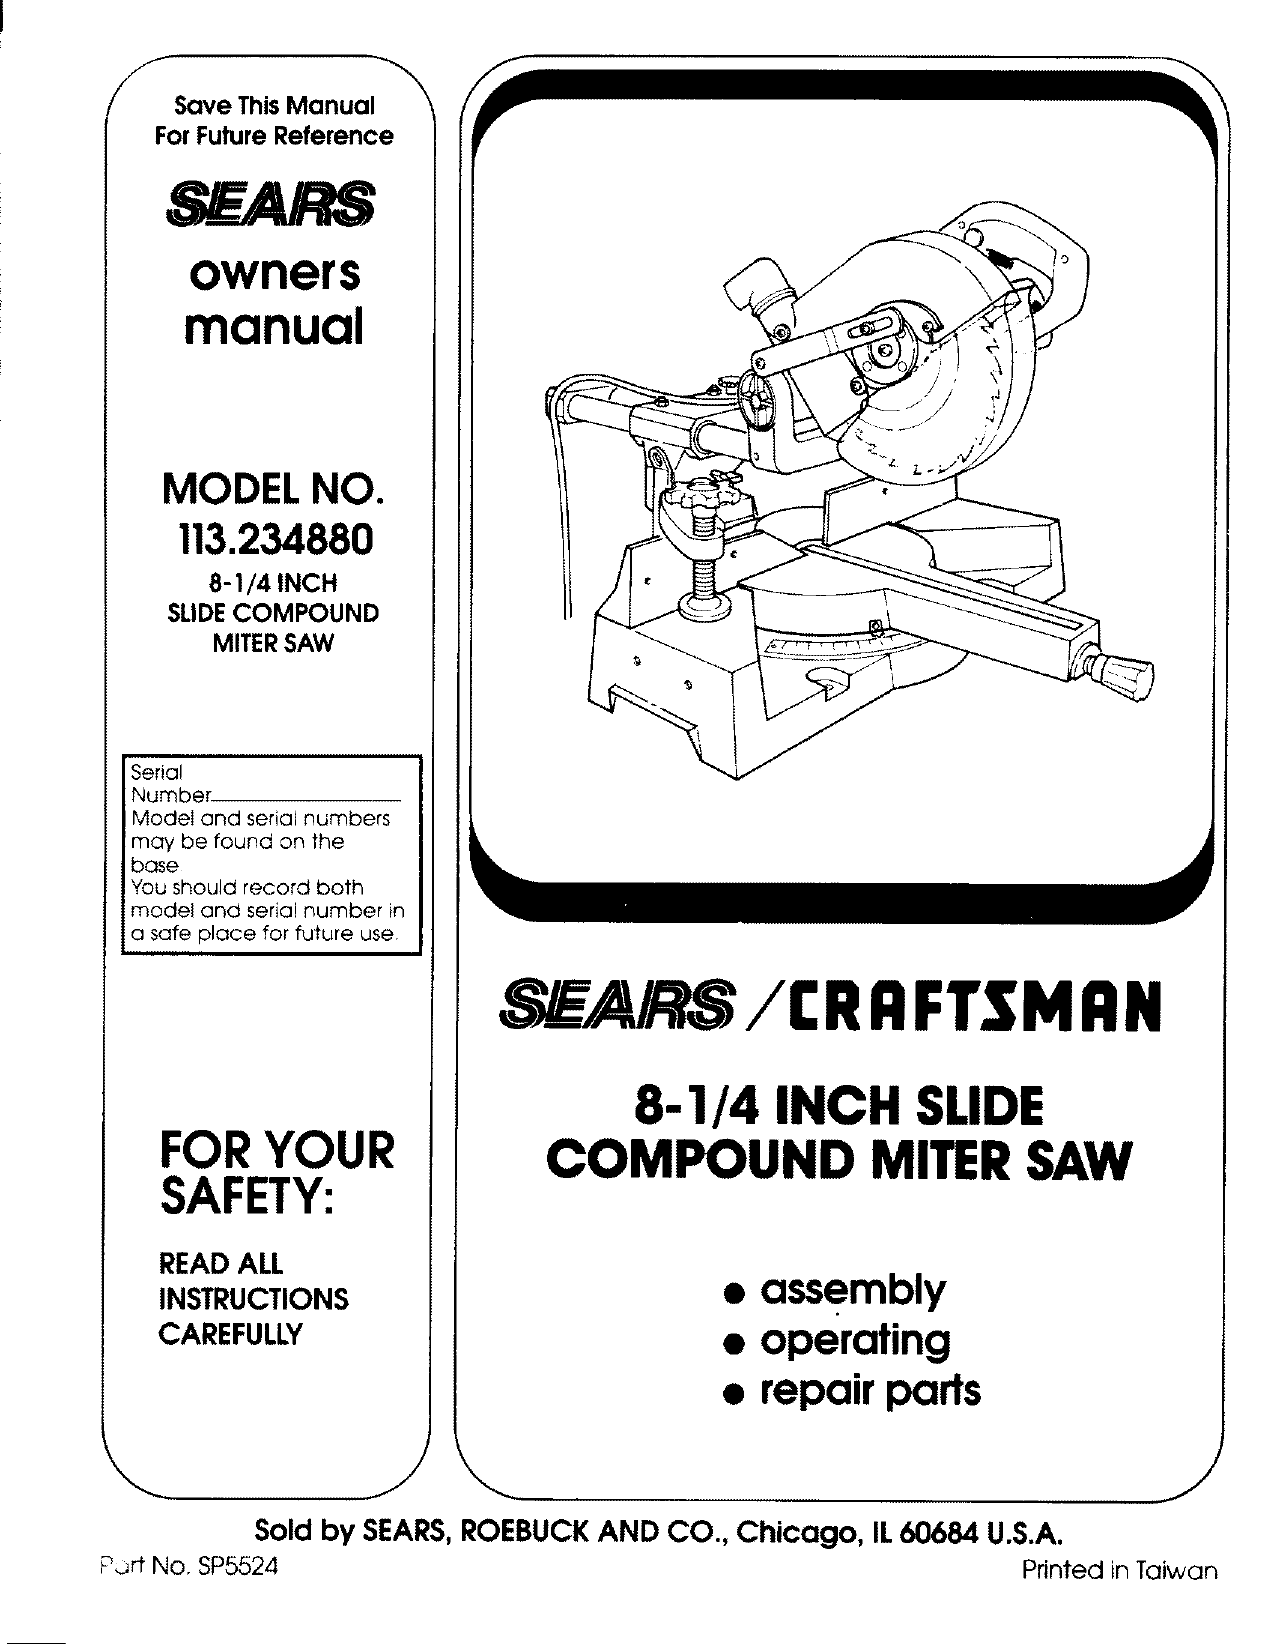 Craftsman 113234880 User Manual 8 1/4 COMPOUND MITER SAW